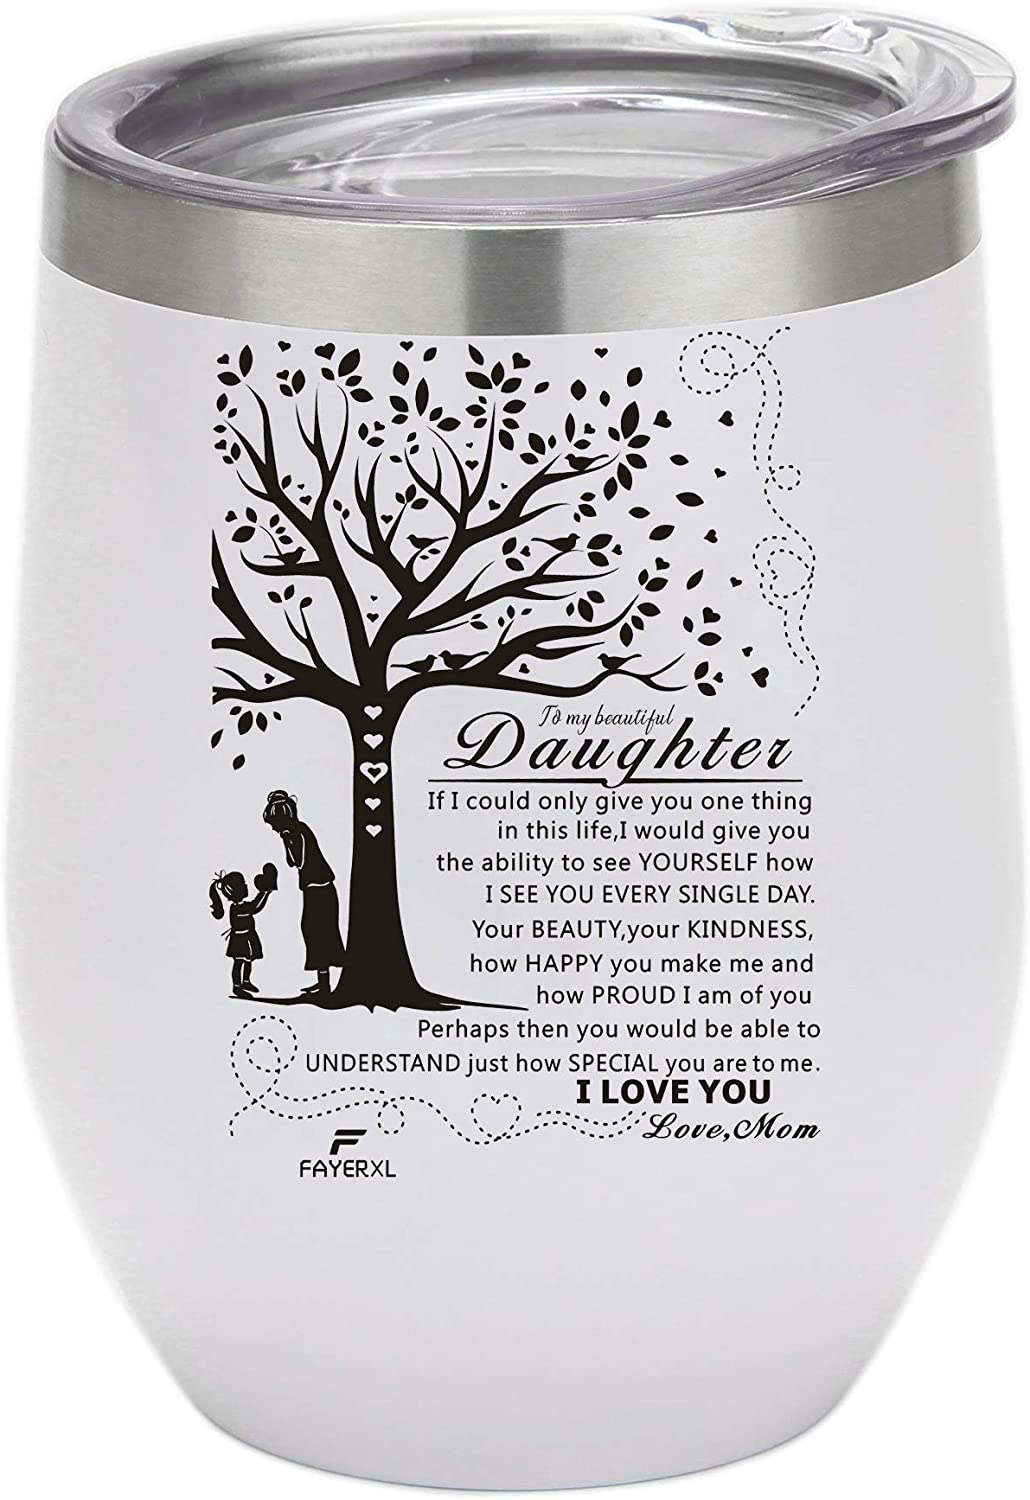 12 OZ Wine Easy-to-use Tumbler with Sayings Women for Engraved fo Gifts 2021 new